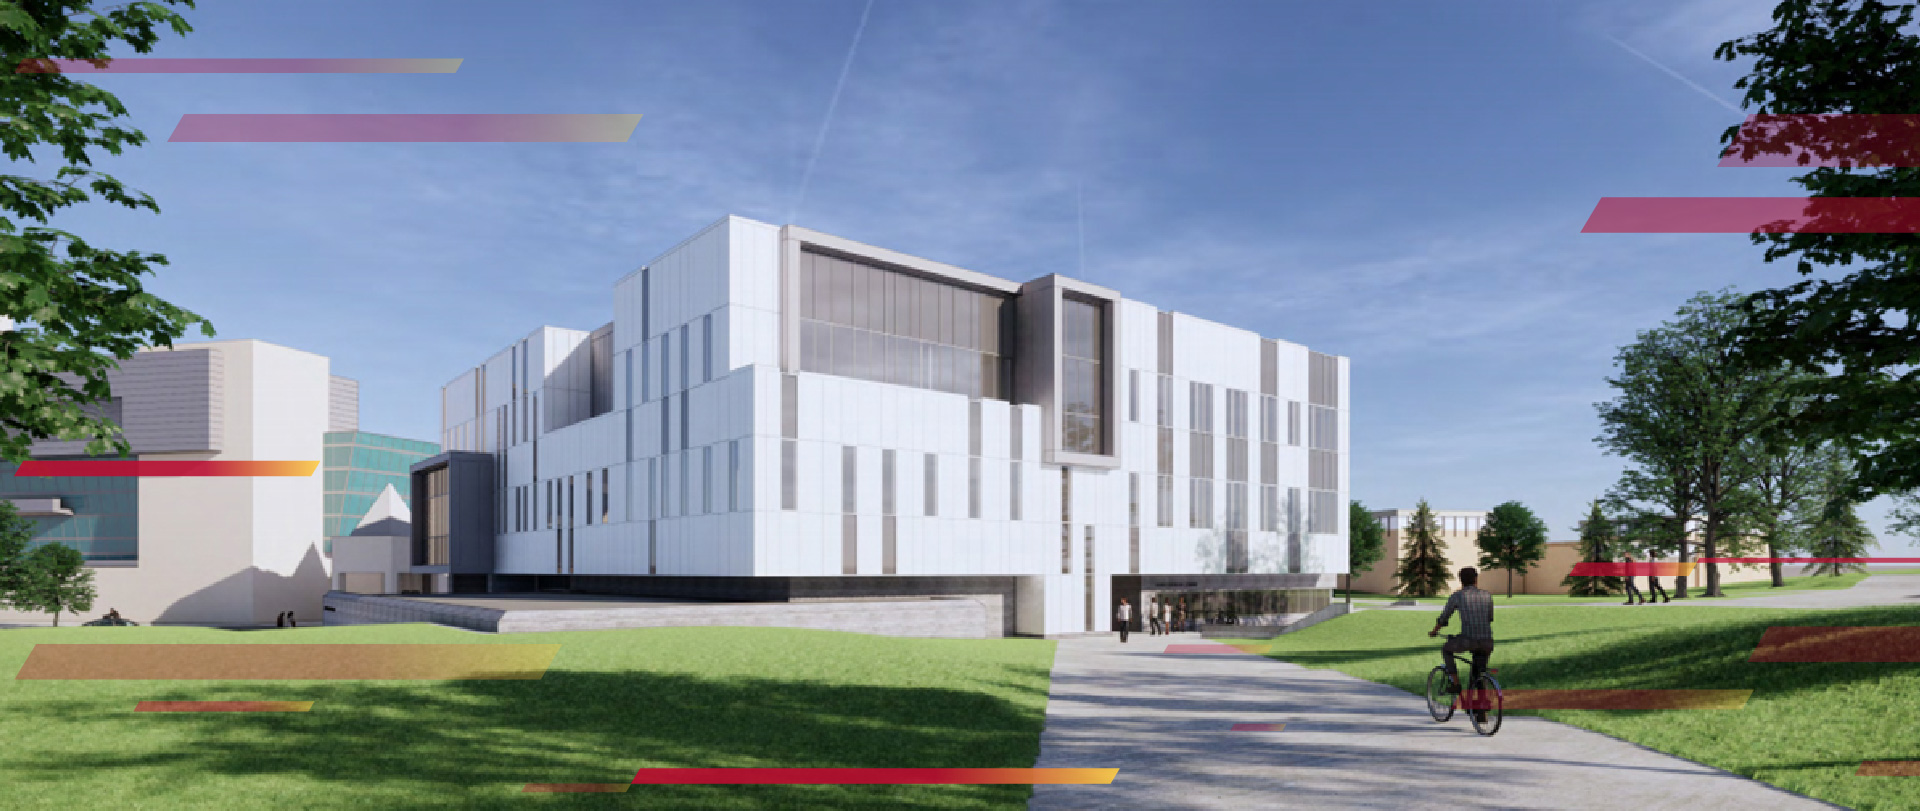 Center for Virtual Learning Rendering